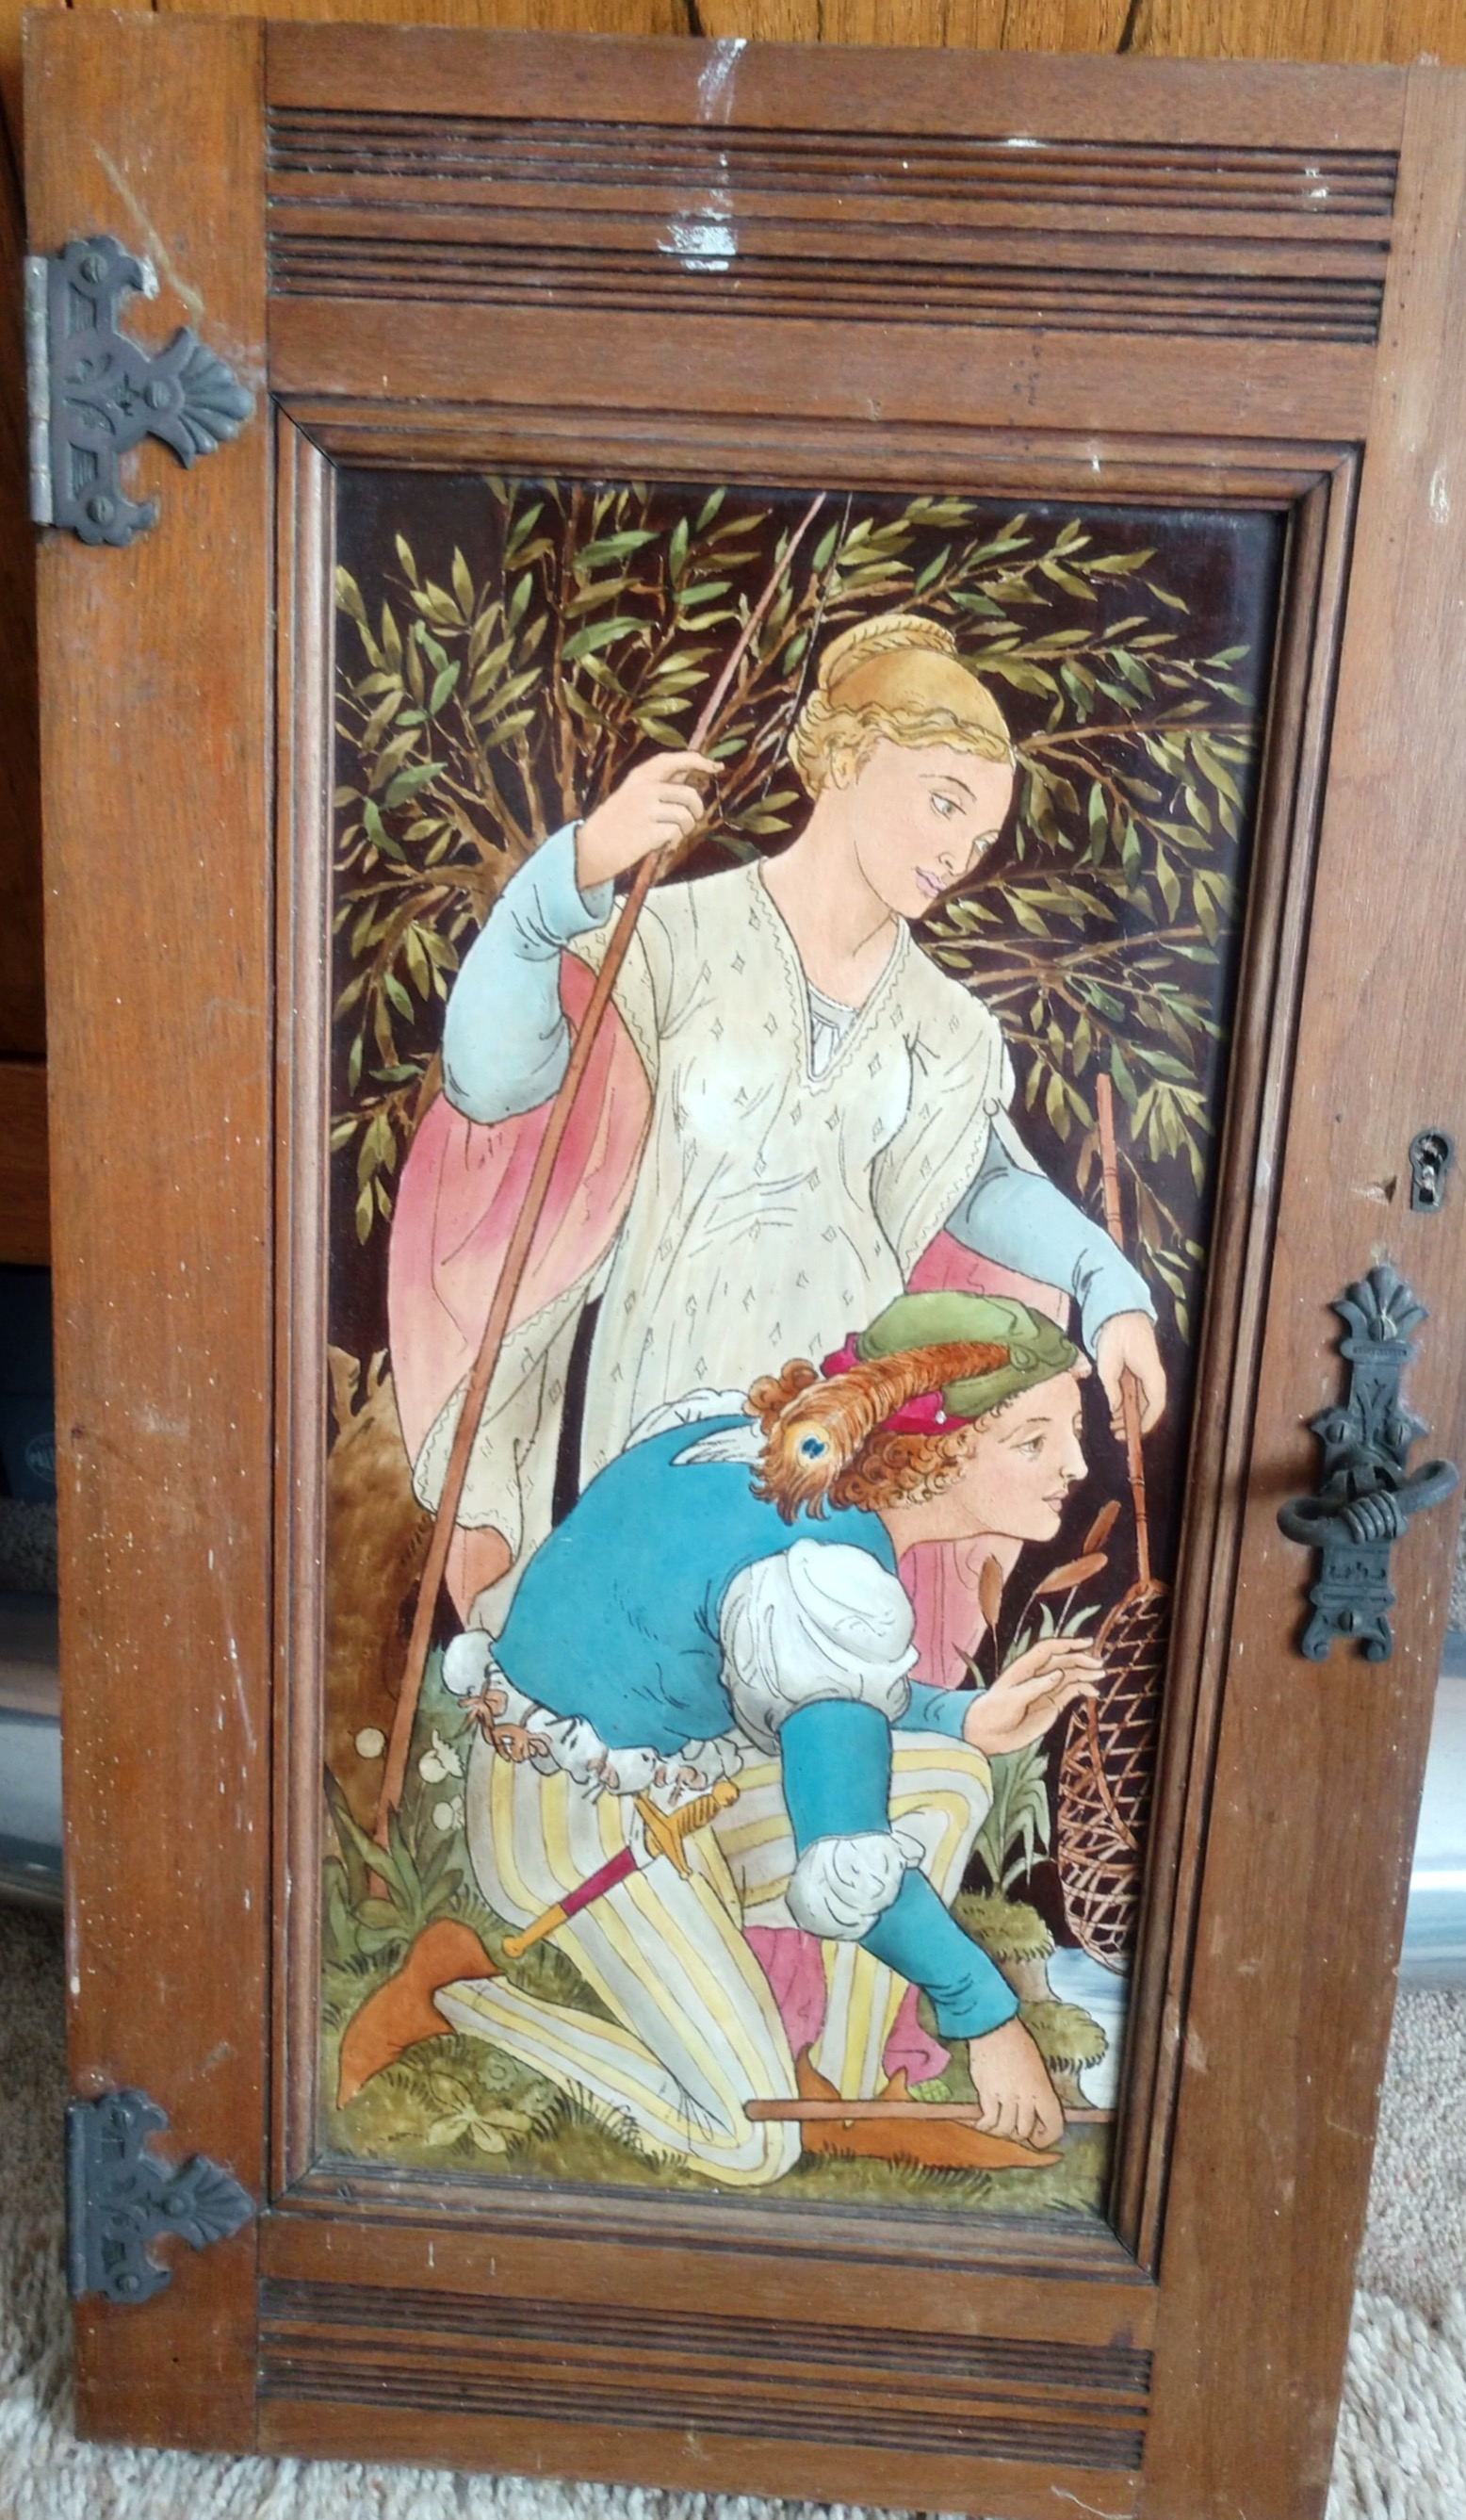 Arts and Crafts / Aesthetic Victorian Tile of Large Size - Still mounted in a cabinet door